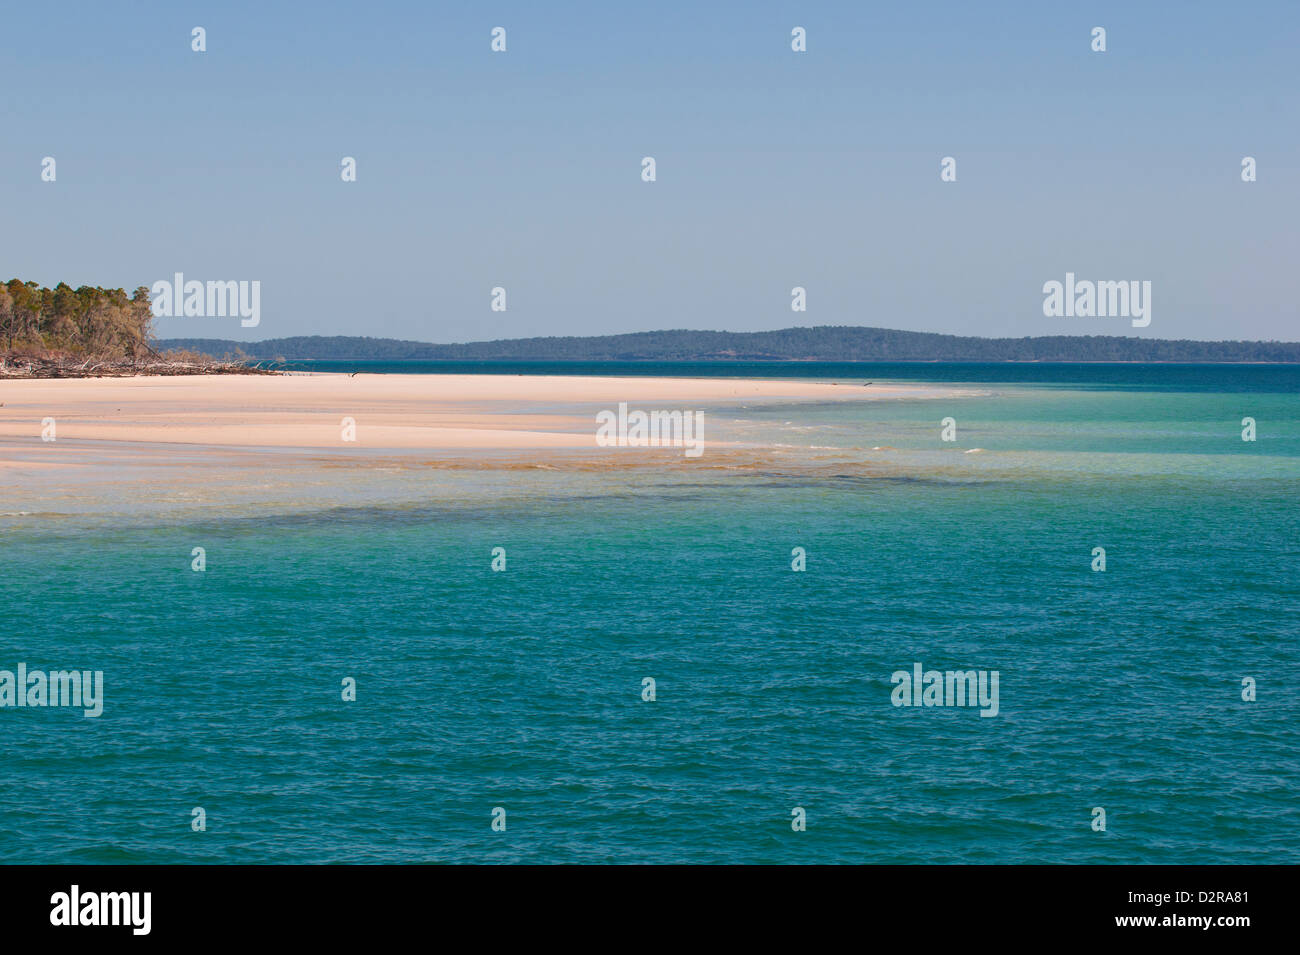 Lonely beach at Fraser Island, UNESCO World Heritage Site, Queensland, Australia, Pacific - Stock Image